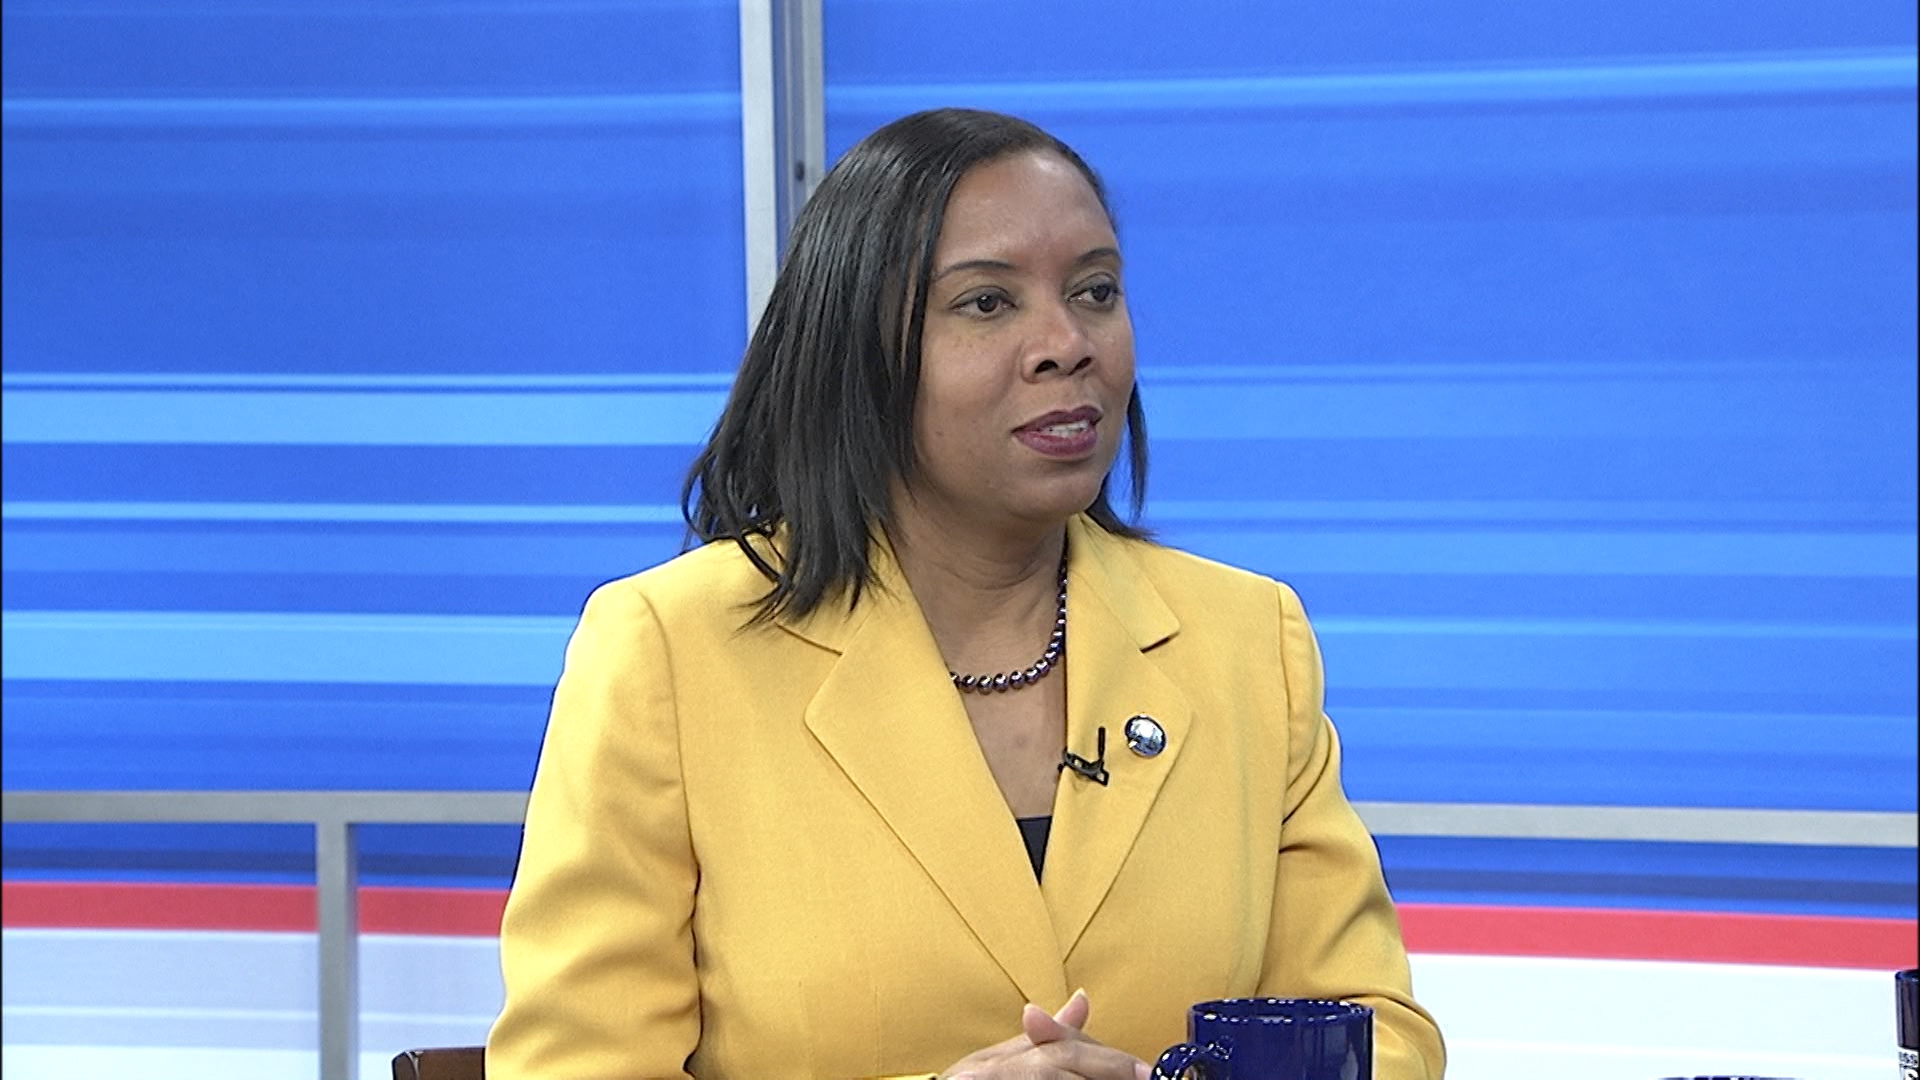 Newsmakers 1/11/2019: Reps. Ucci, Chippendale; Council Pres. Matos